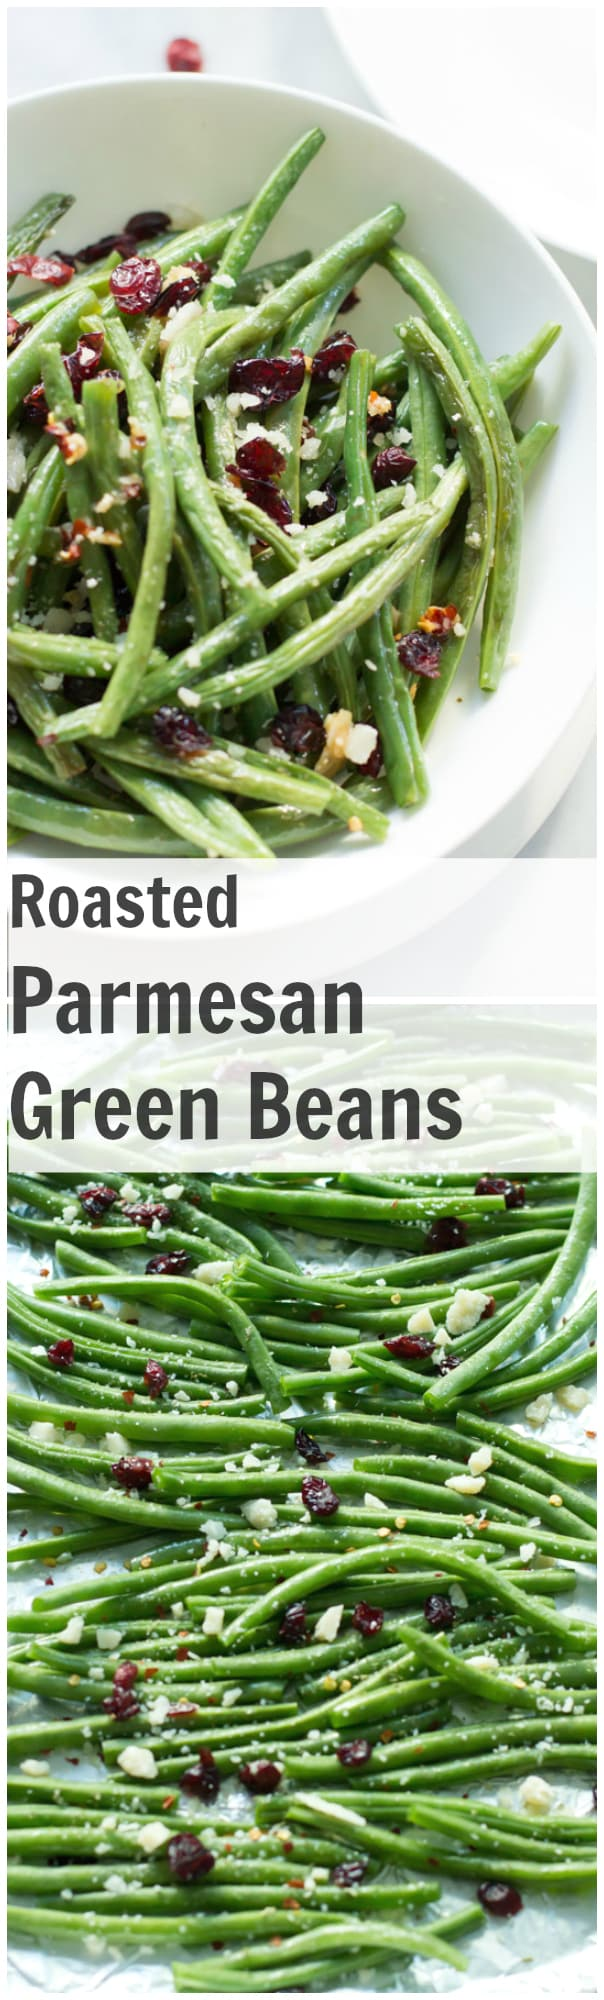 ... roasted green beans mushrooms with walnuts garlic roasted green beans